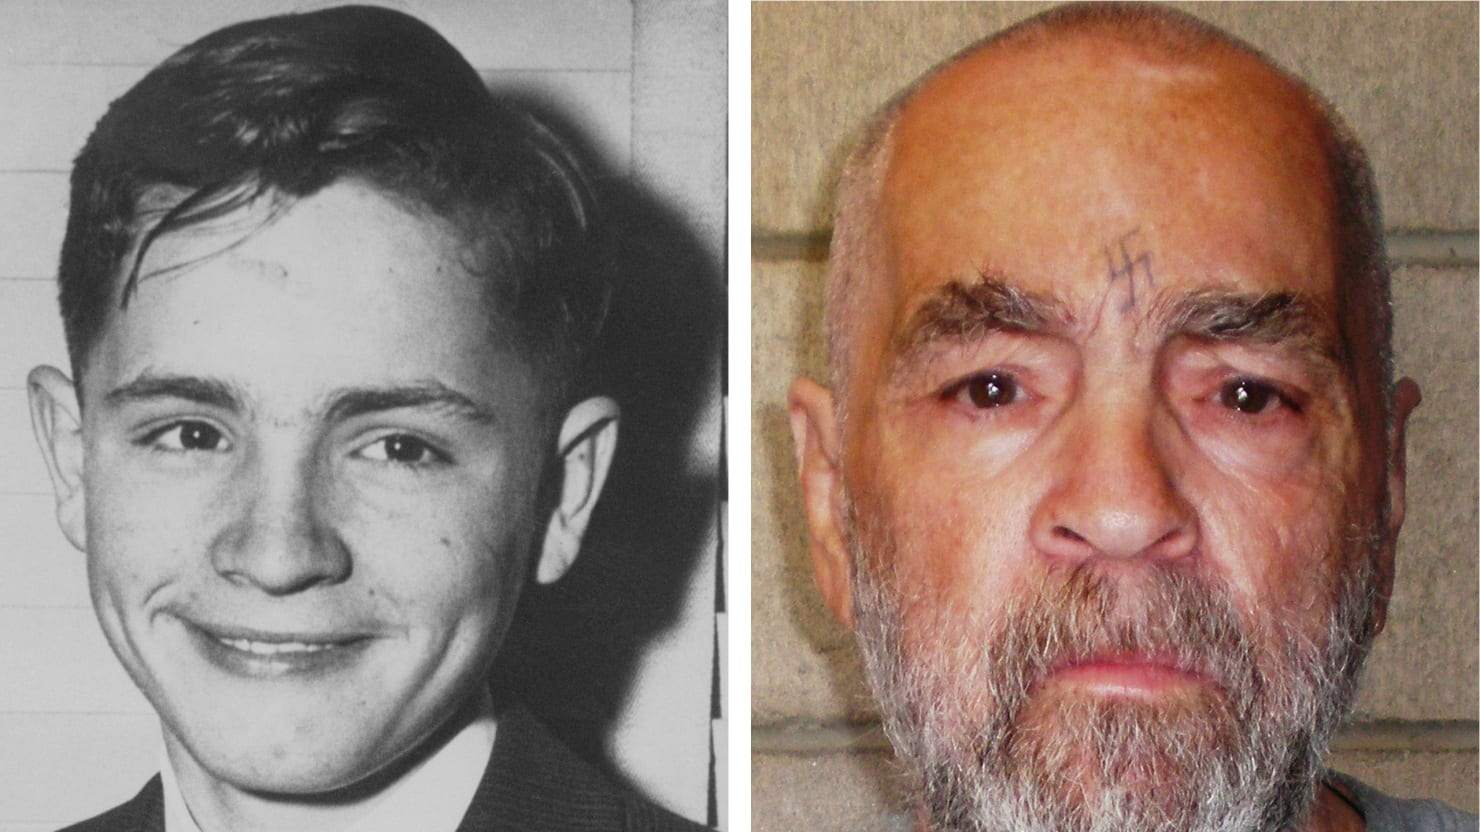 The Making of a Monster: Charles Manson's Childhood